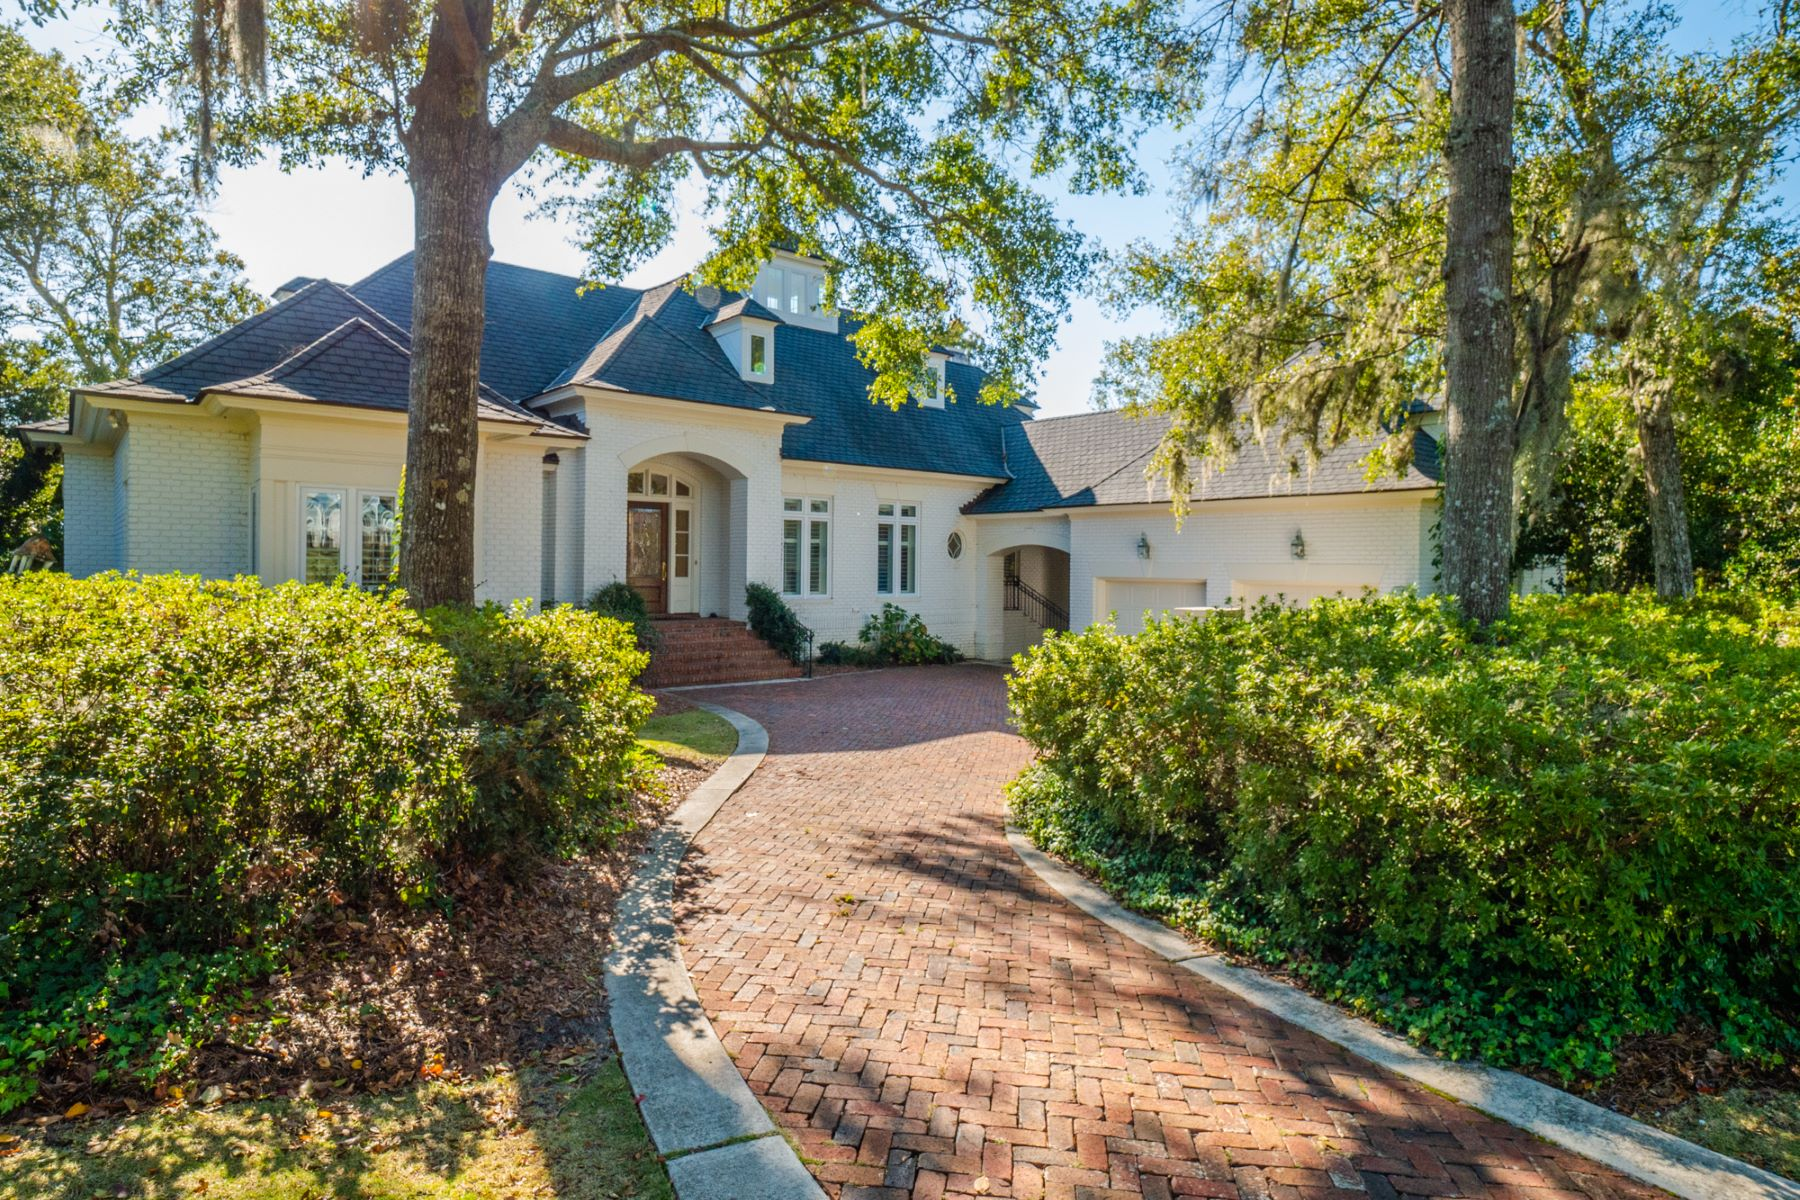 Single Family Homes for Sale at Magnificent Landfall Residence on the Intracoastal 1417 Landfall Dr Wilmington, North Carolina 28405 United States